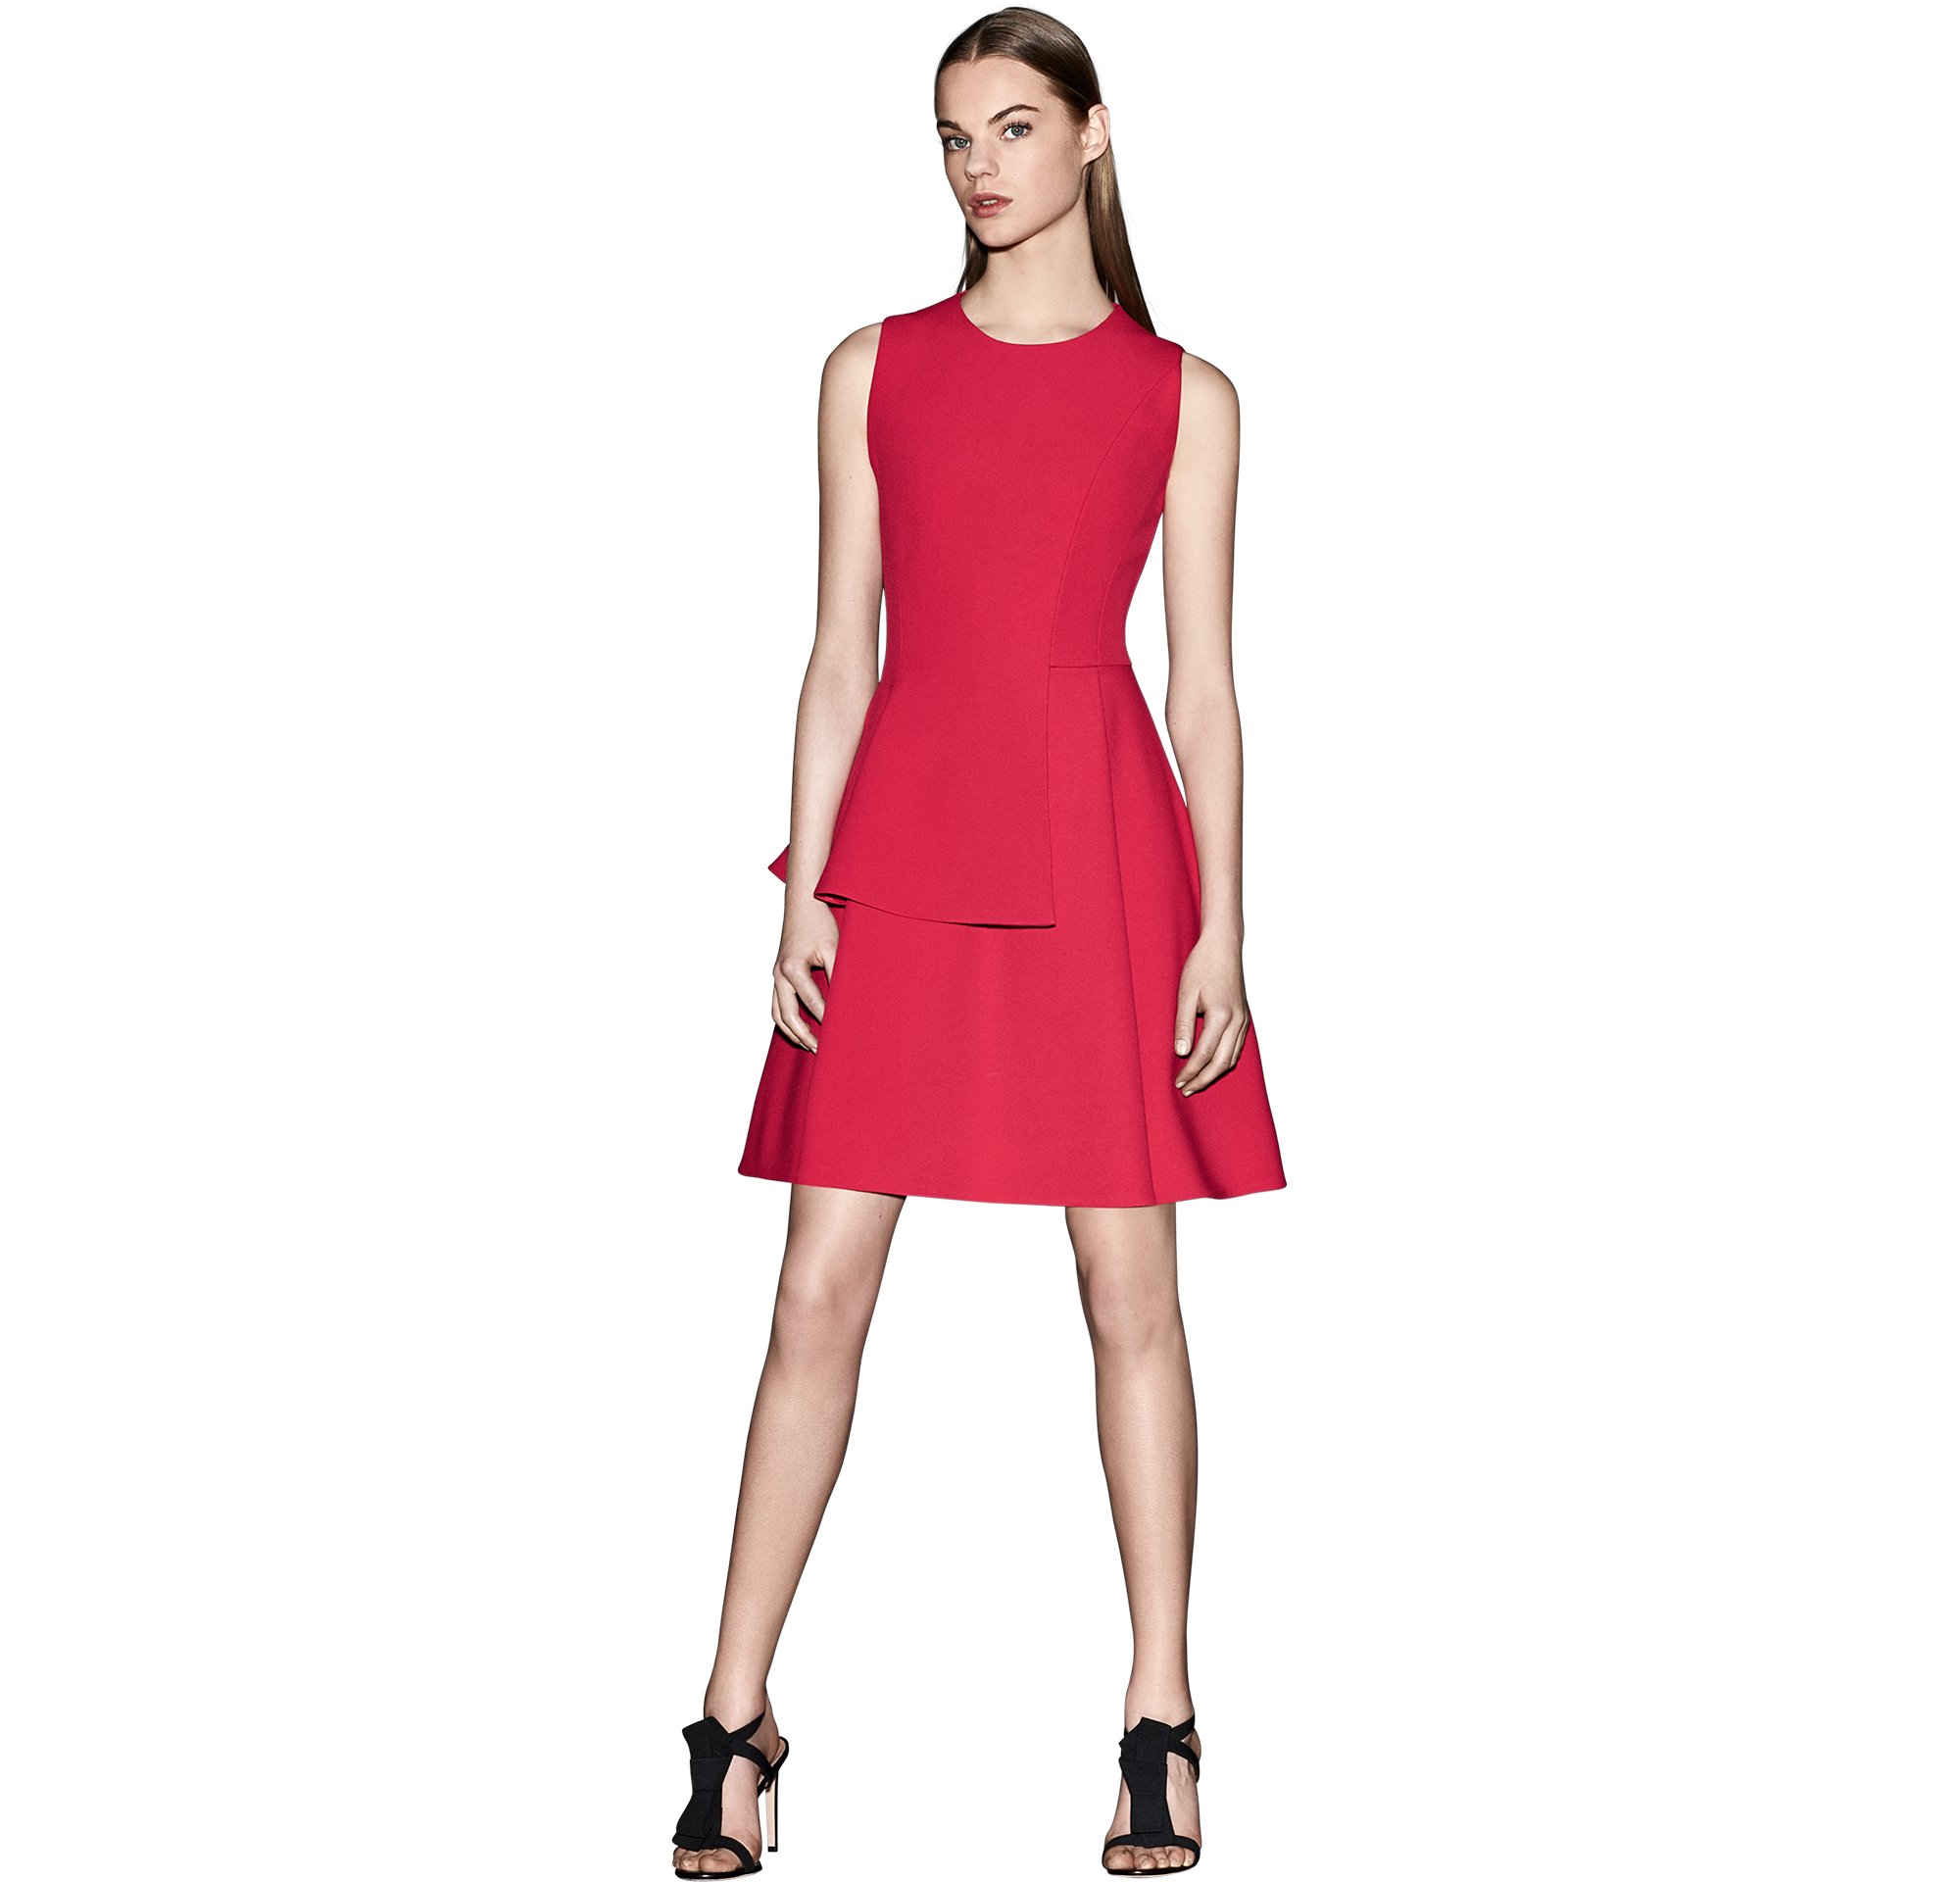 Red dress with black shoes by BOSS